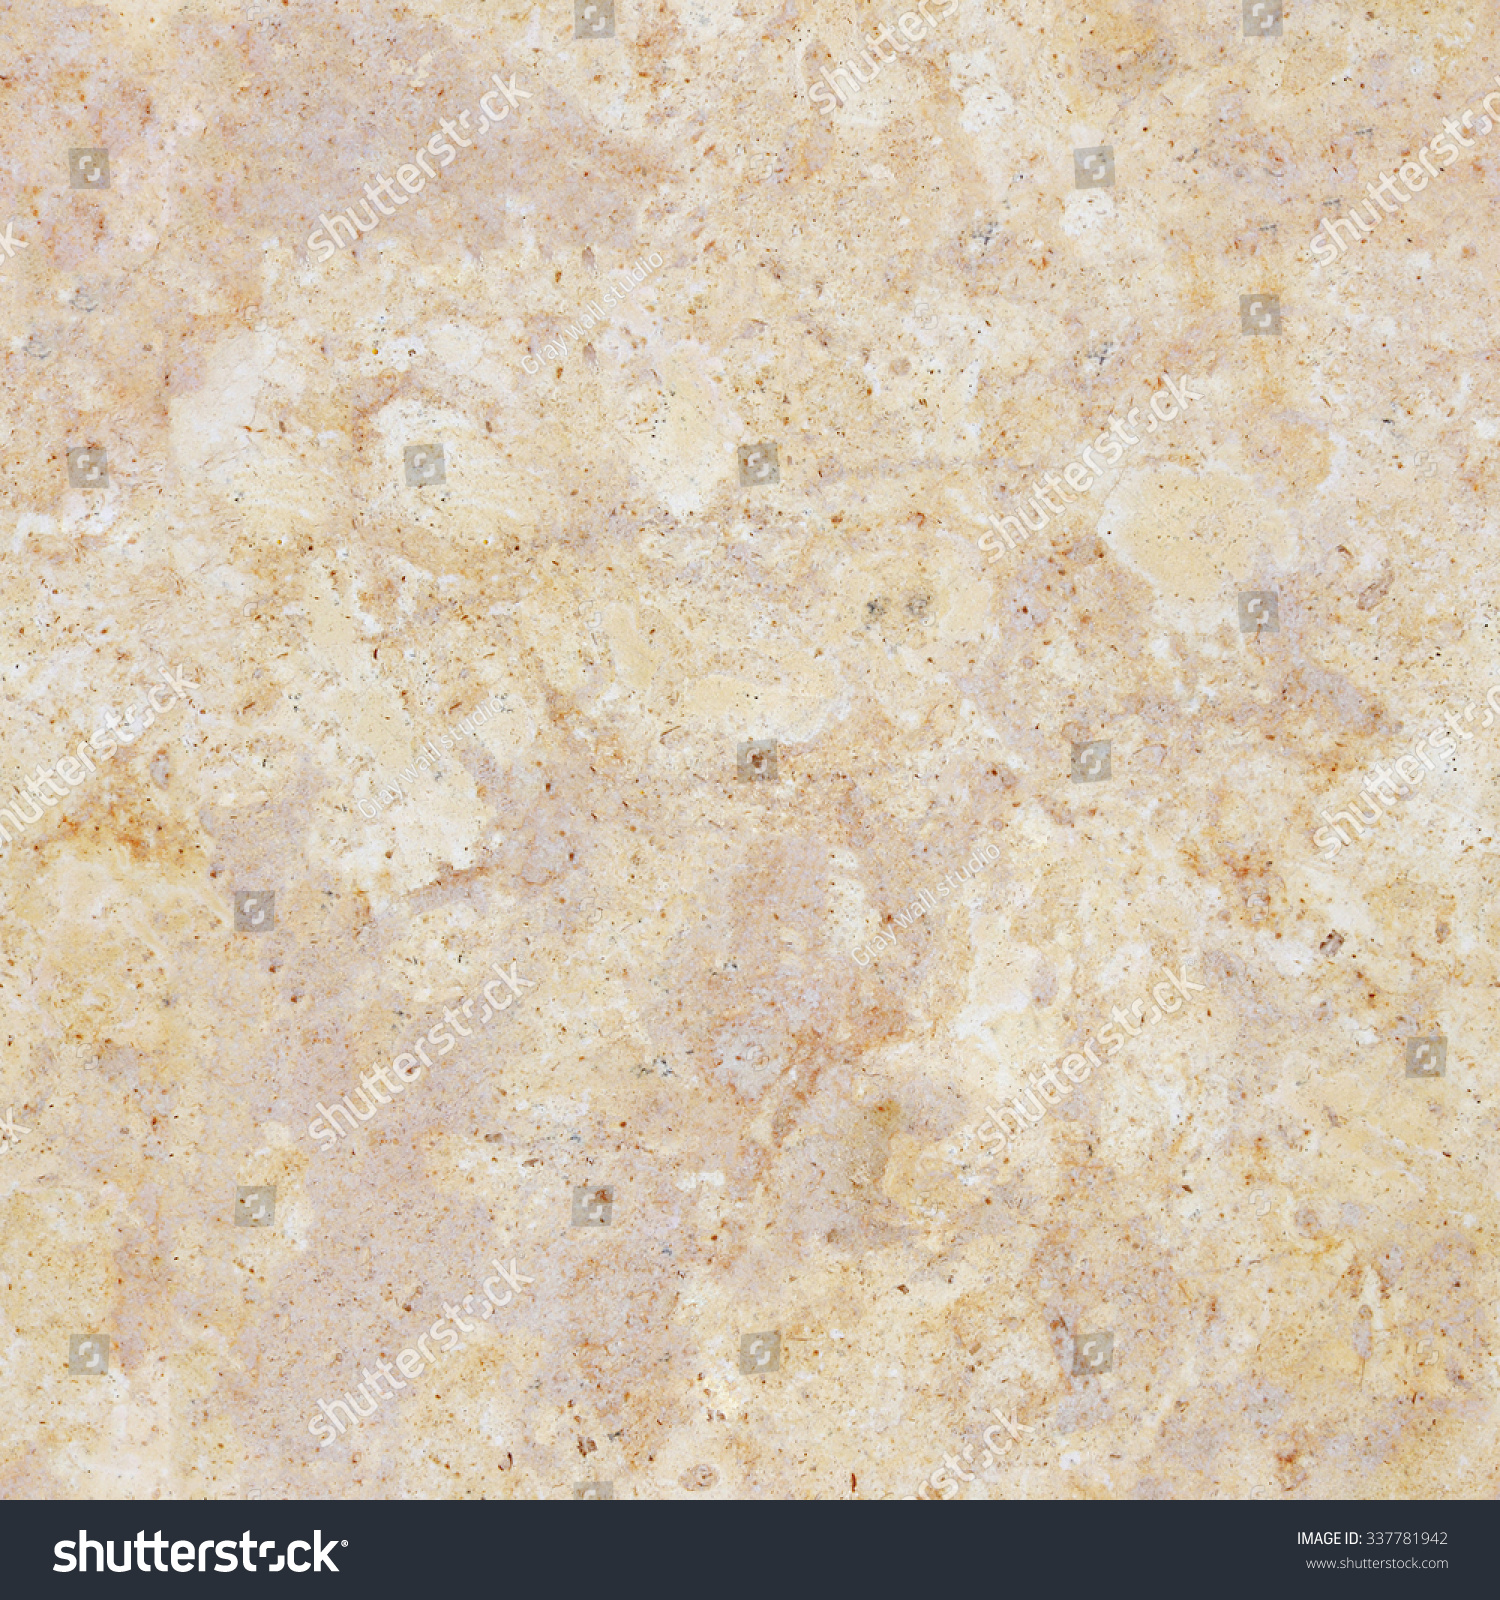 Seamless Beige Marble Stone Wall Texture Tiled Cream